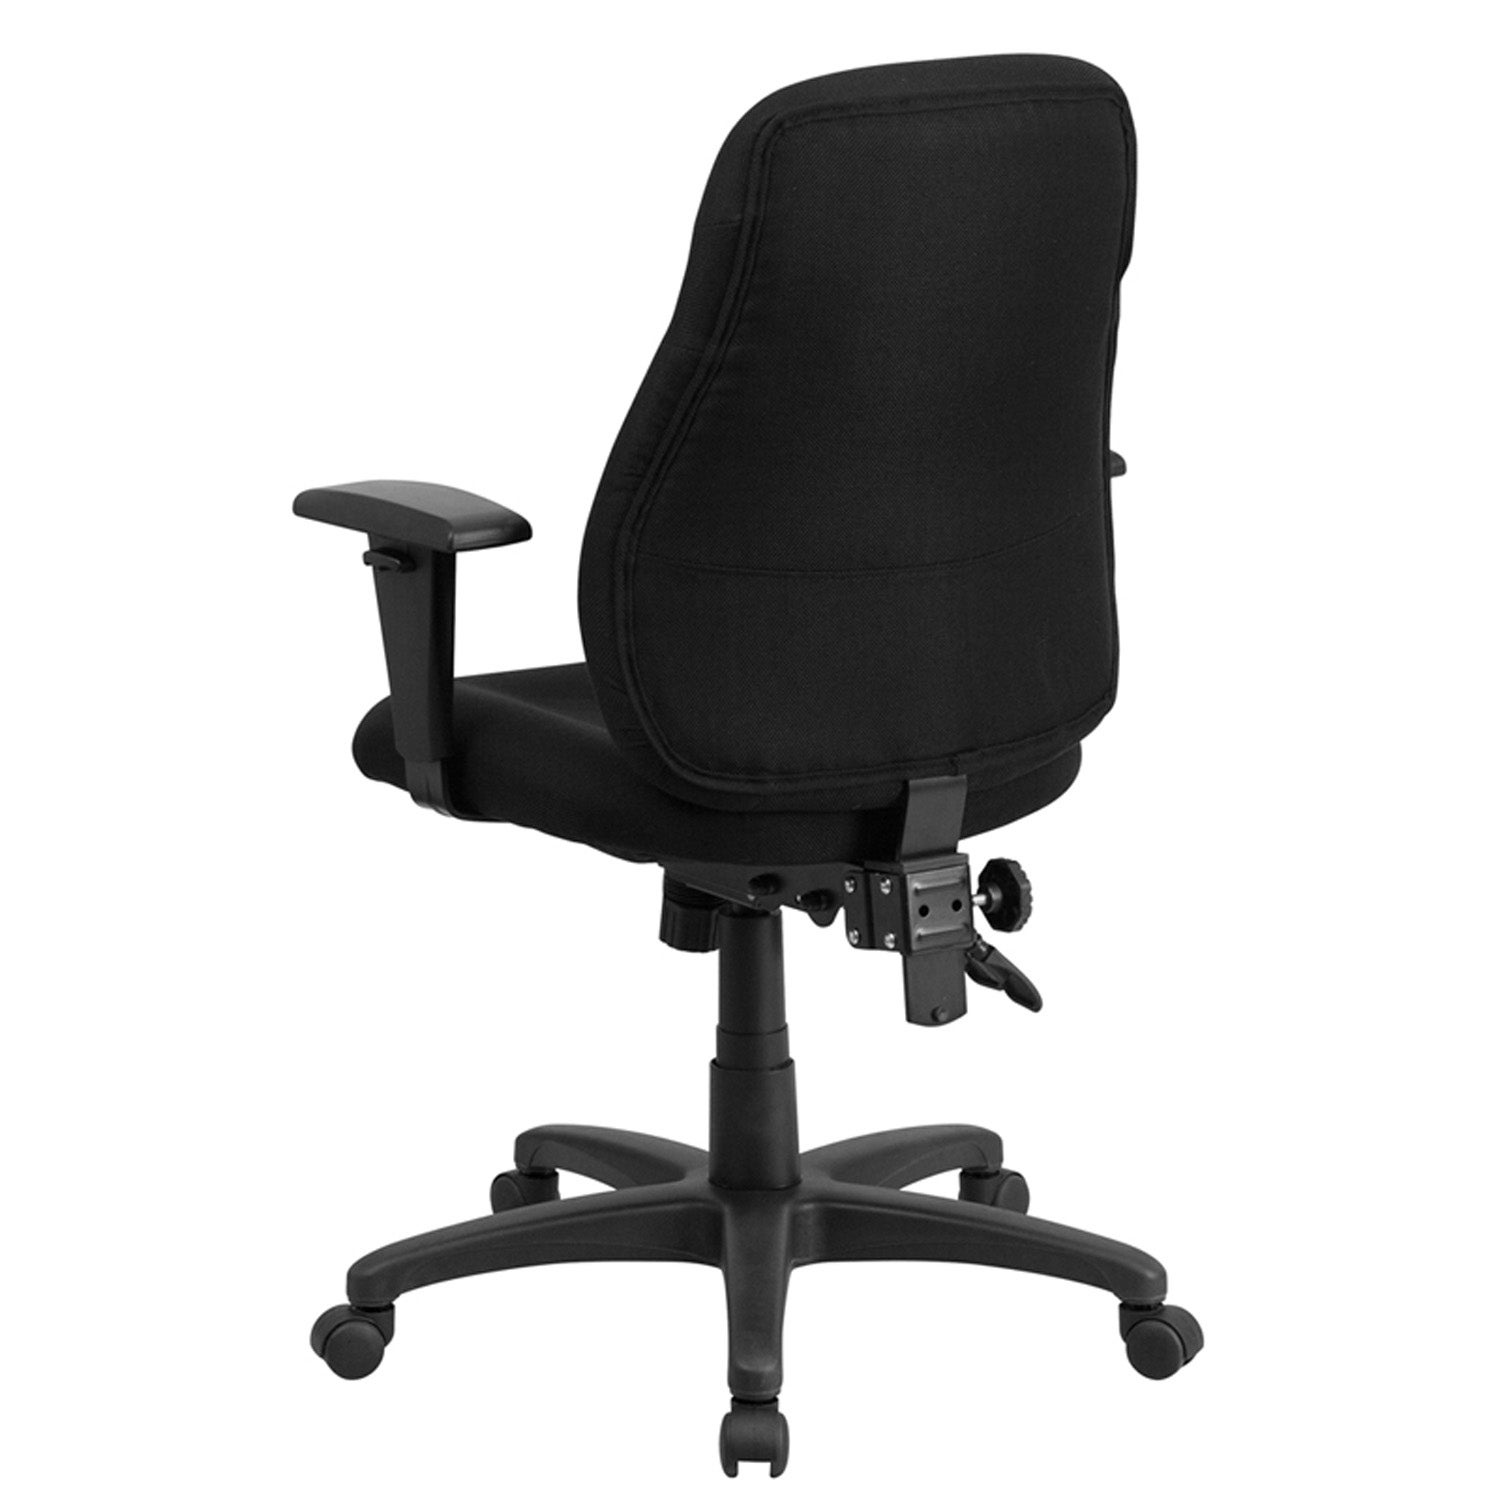 Shop Silkeborg Mid Back Black Fabric Ergonomic Swivel Home Office Task Chair Arms On Sale Overstock 16627376